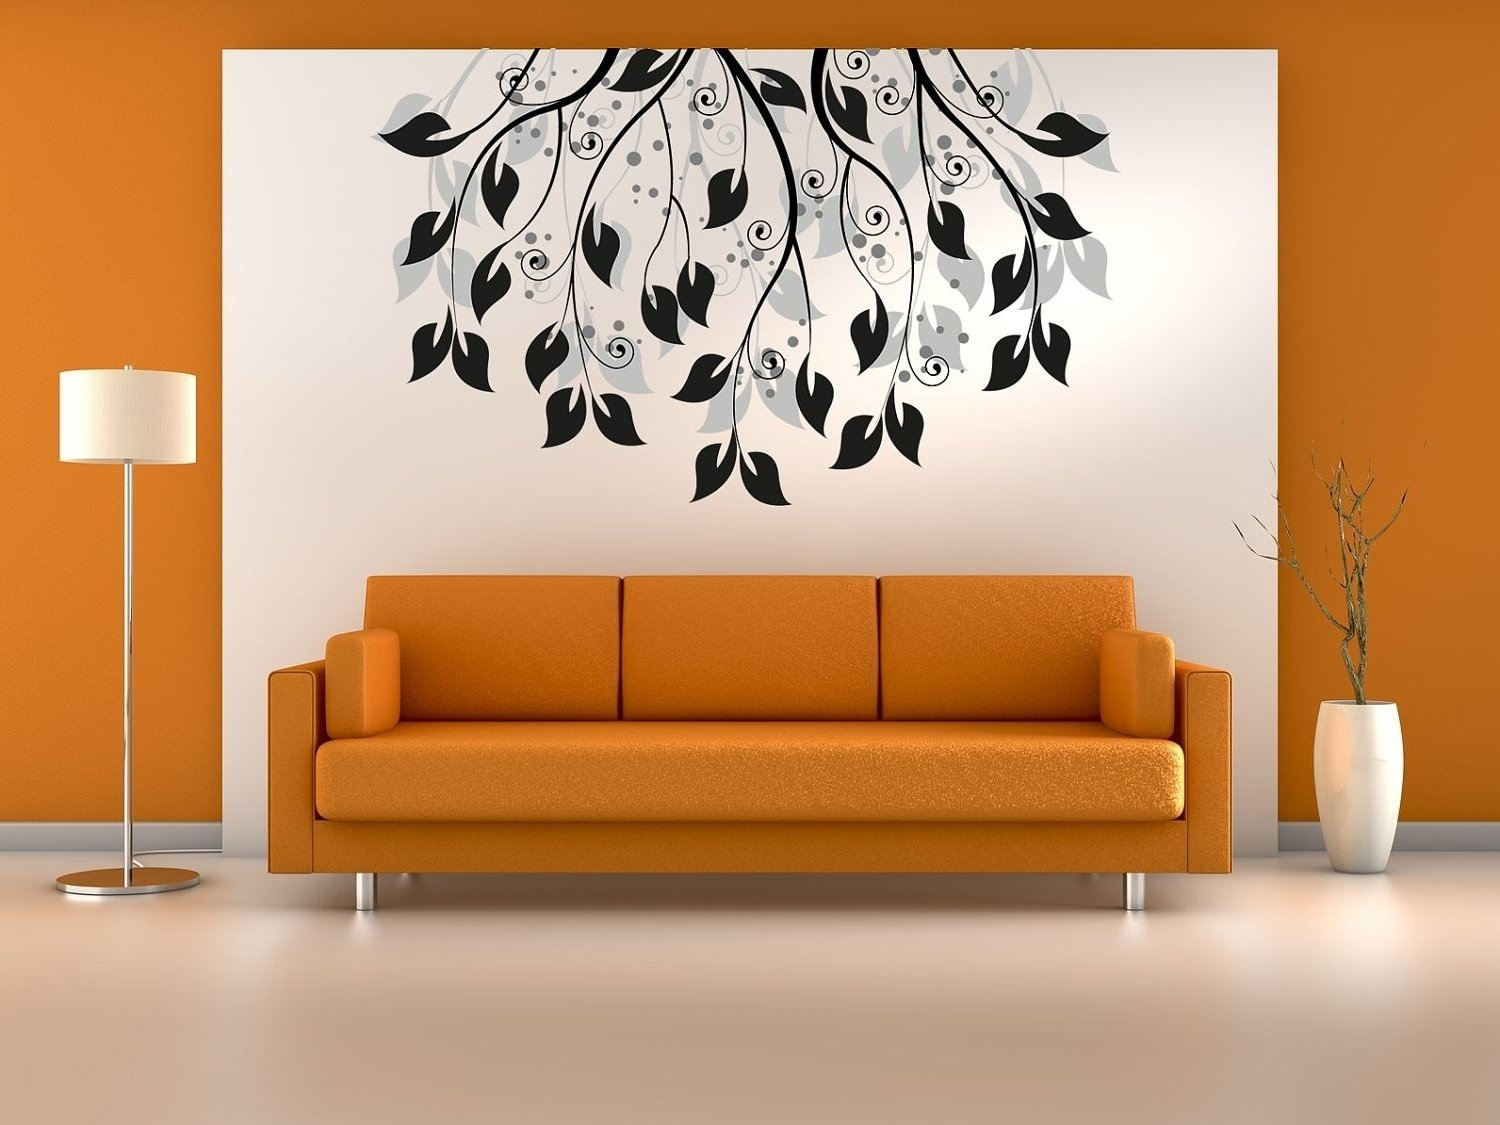 10 Wonderful Creative Painting Ideas For Walls wall painting ideas for living room nurani 2020